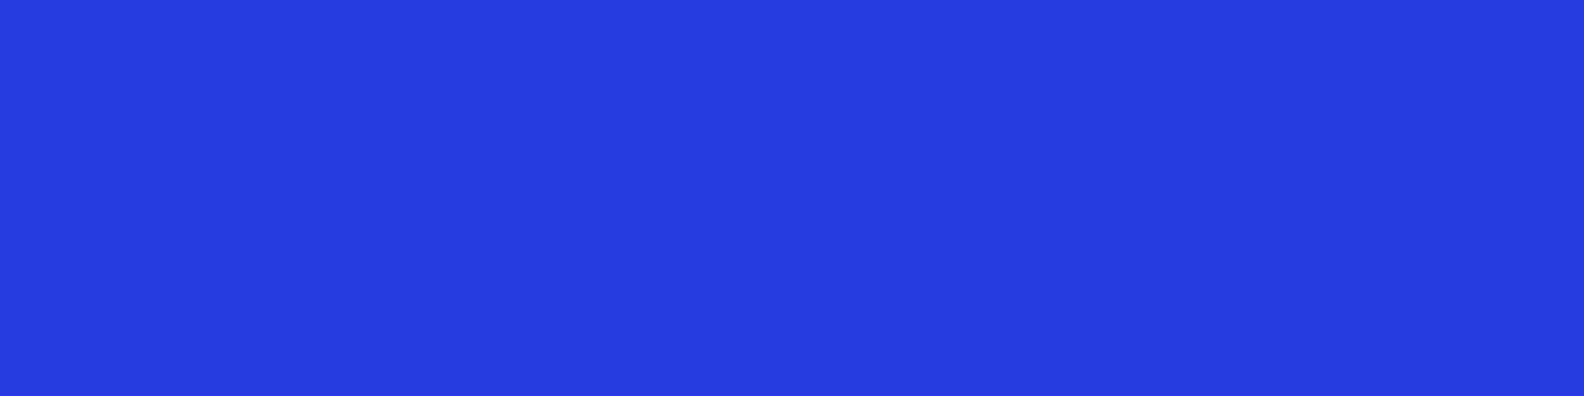 1584x396 Palatinate Blue Solid Color Background